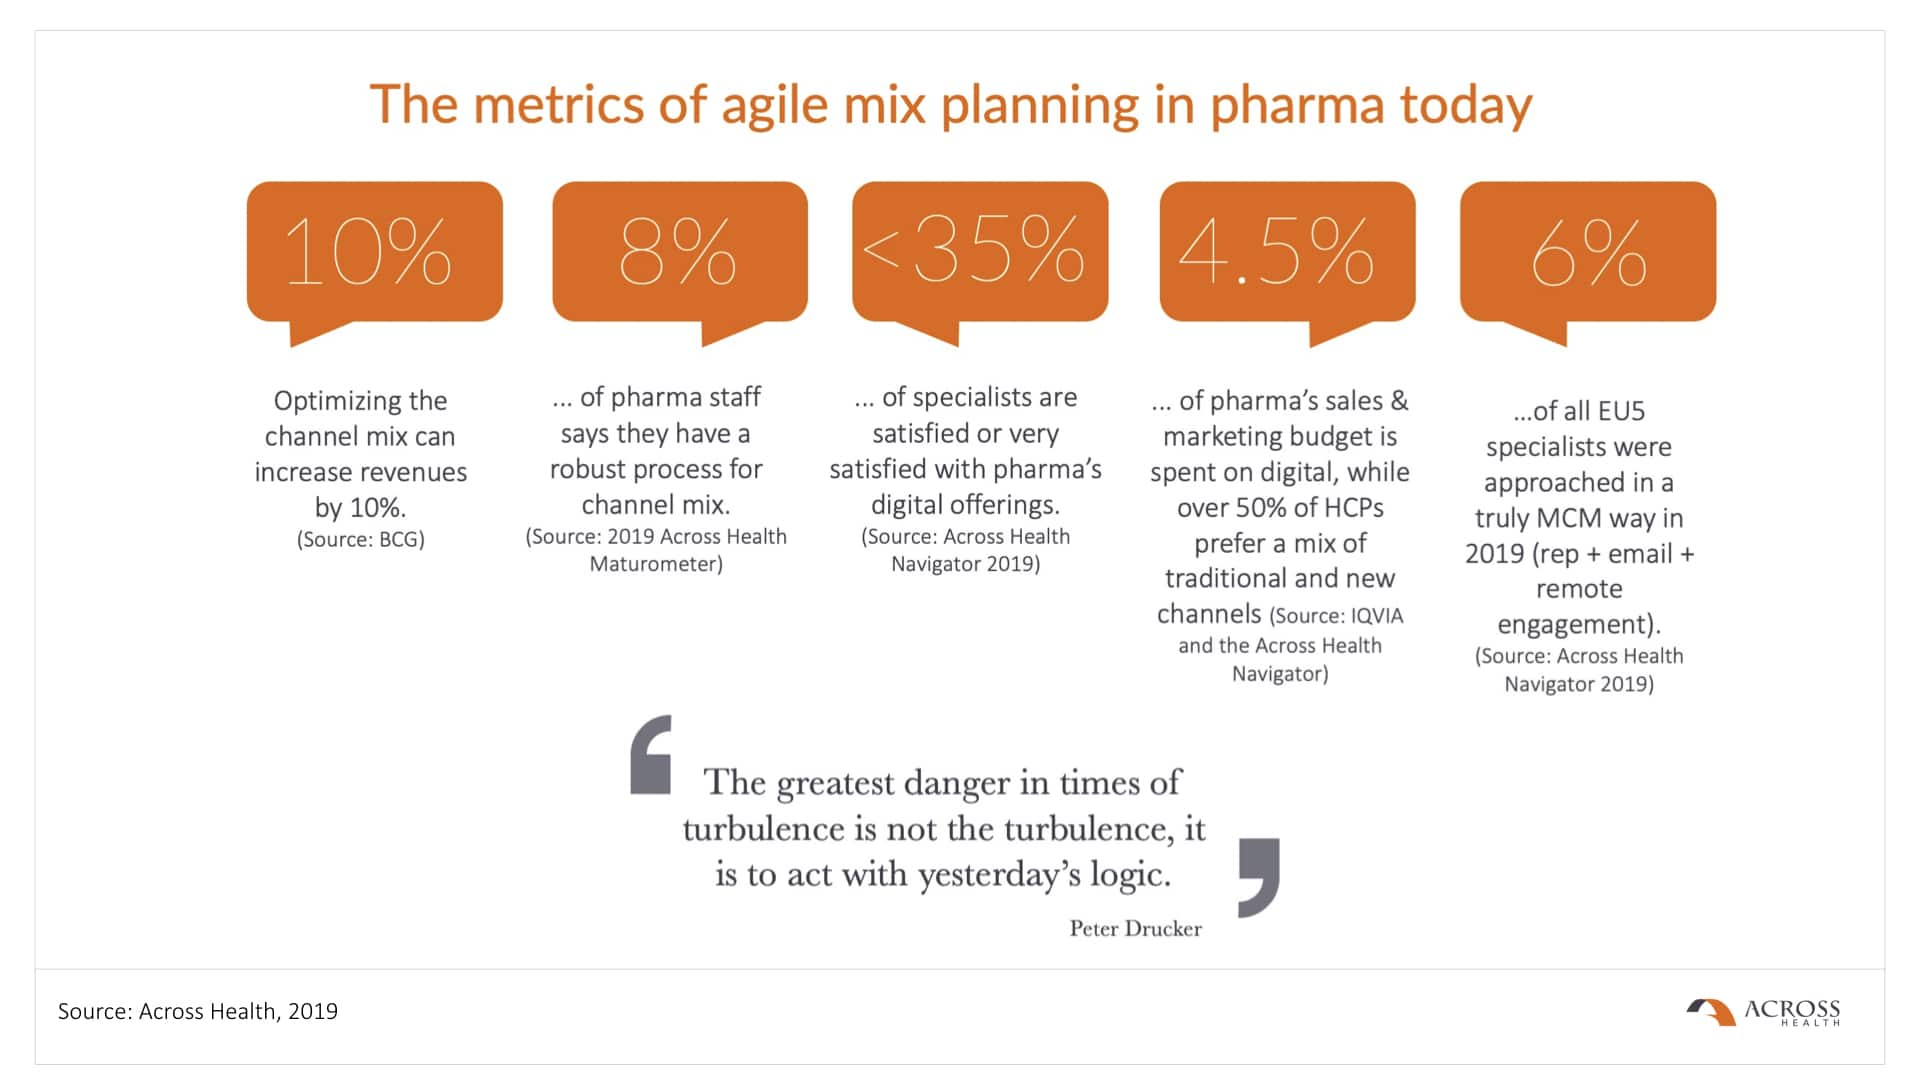 The metrics of agile mix planning in pharma today